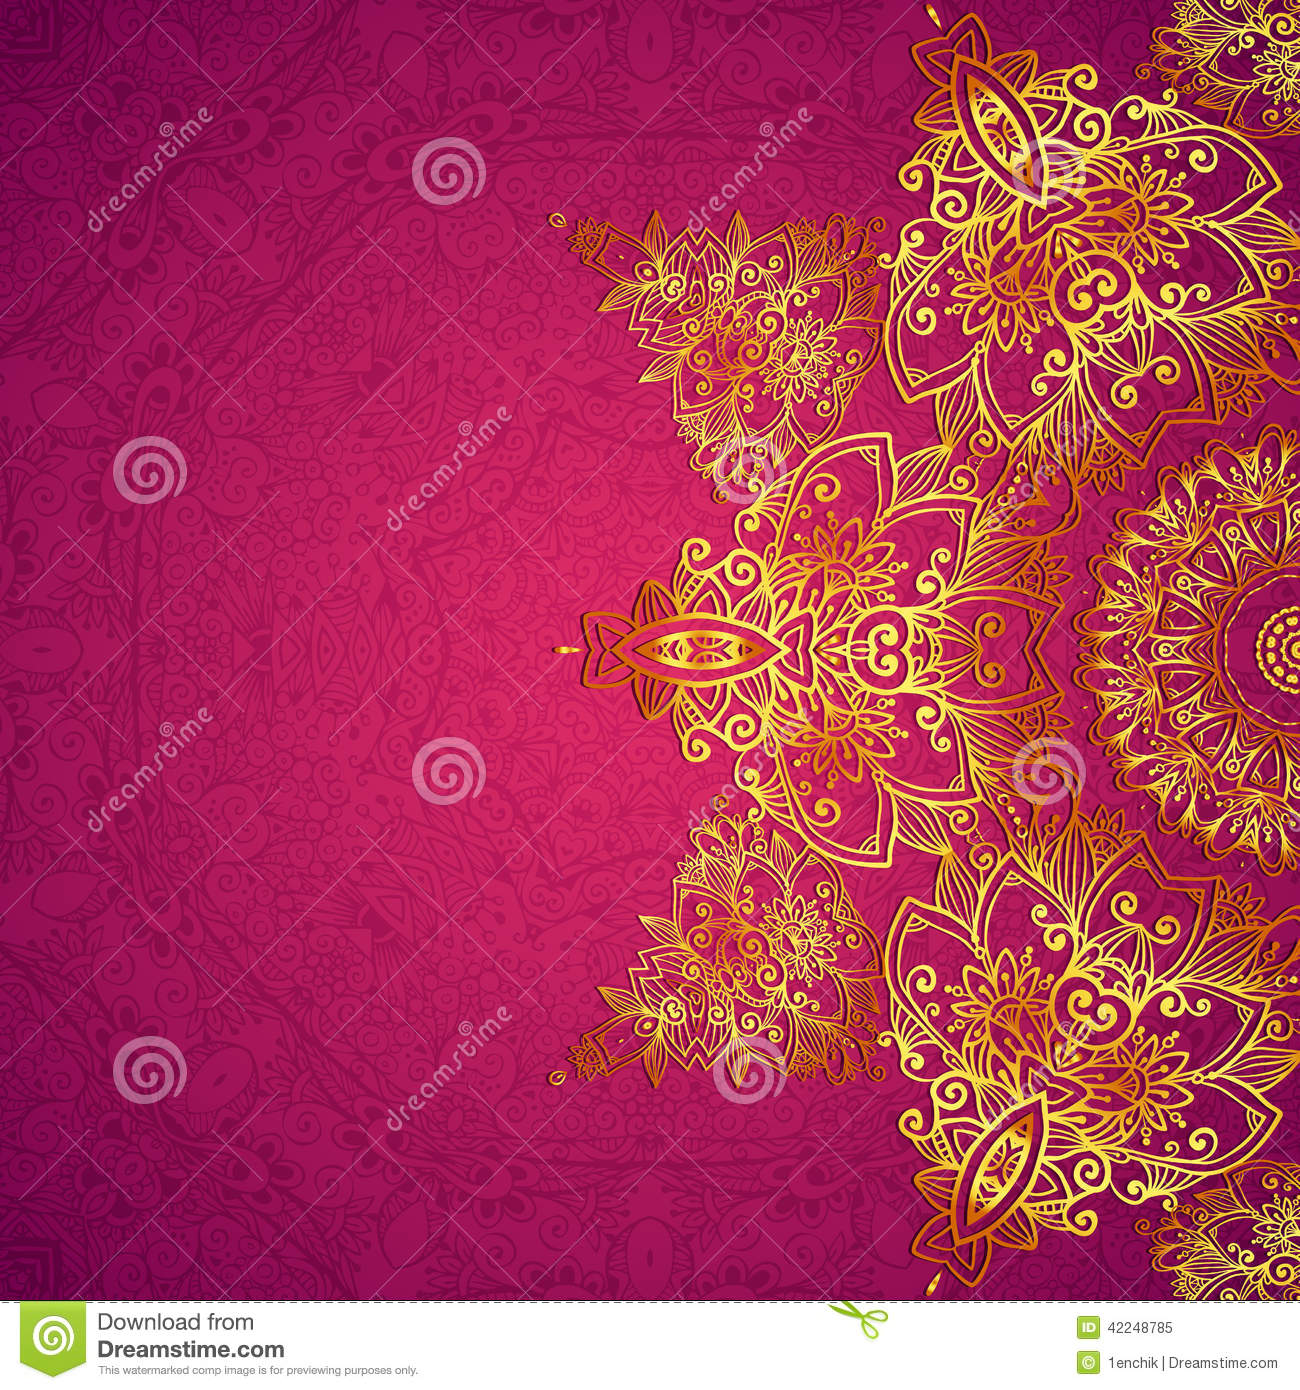 Purple Ornate Vintage Wedding Card Background Stock Vector ...